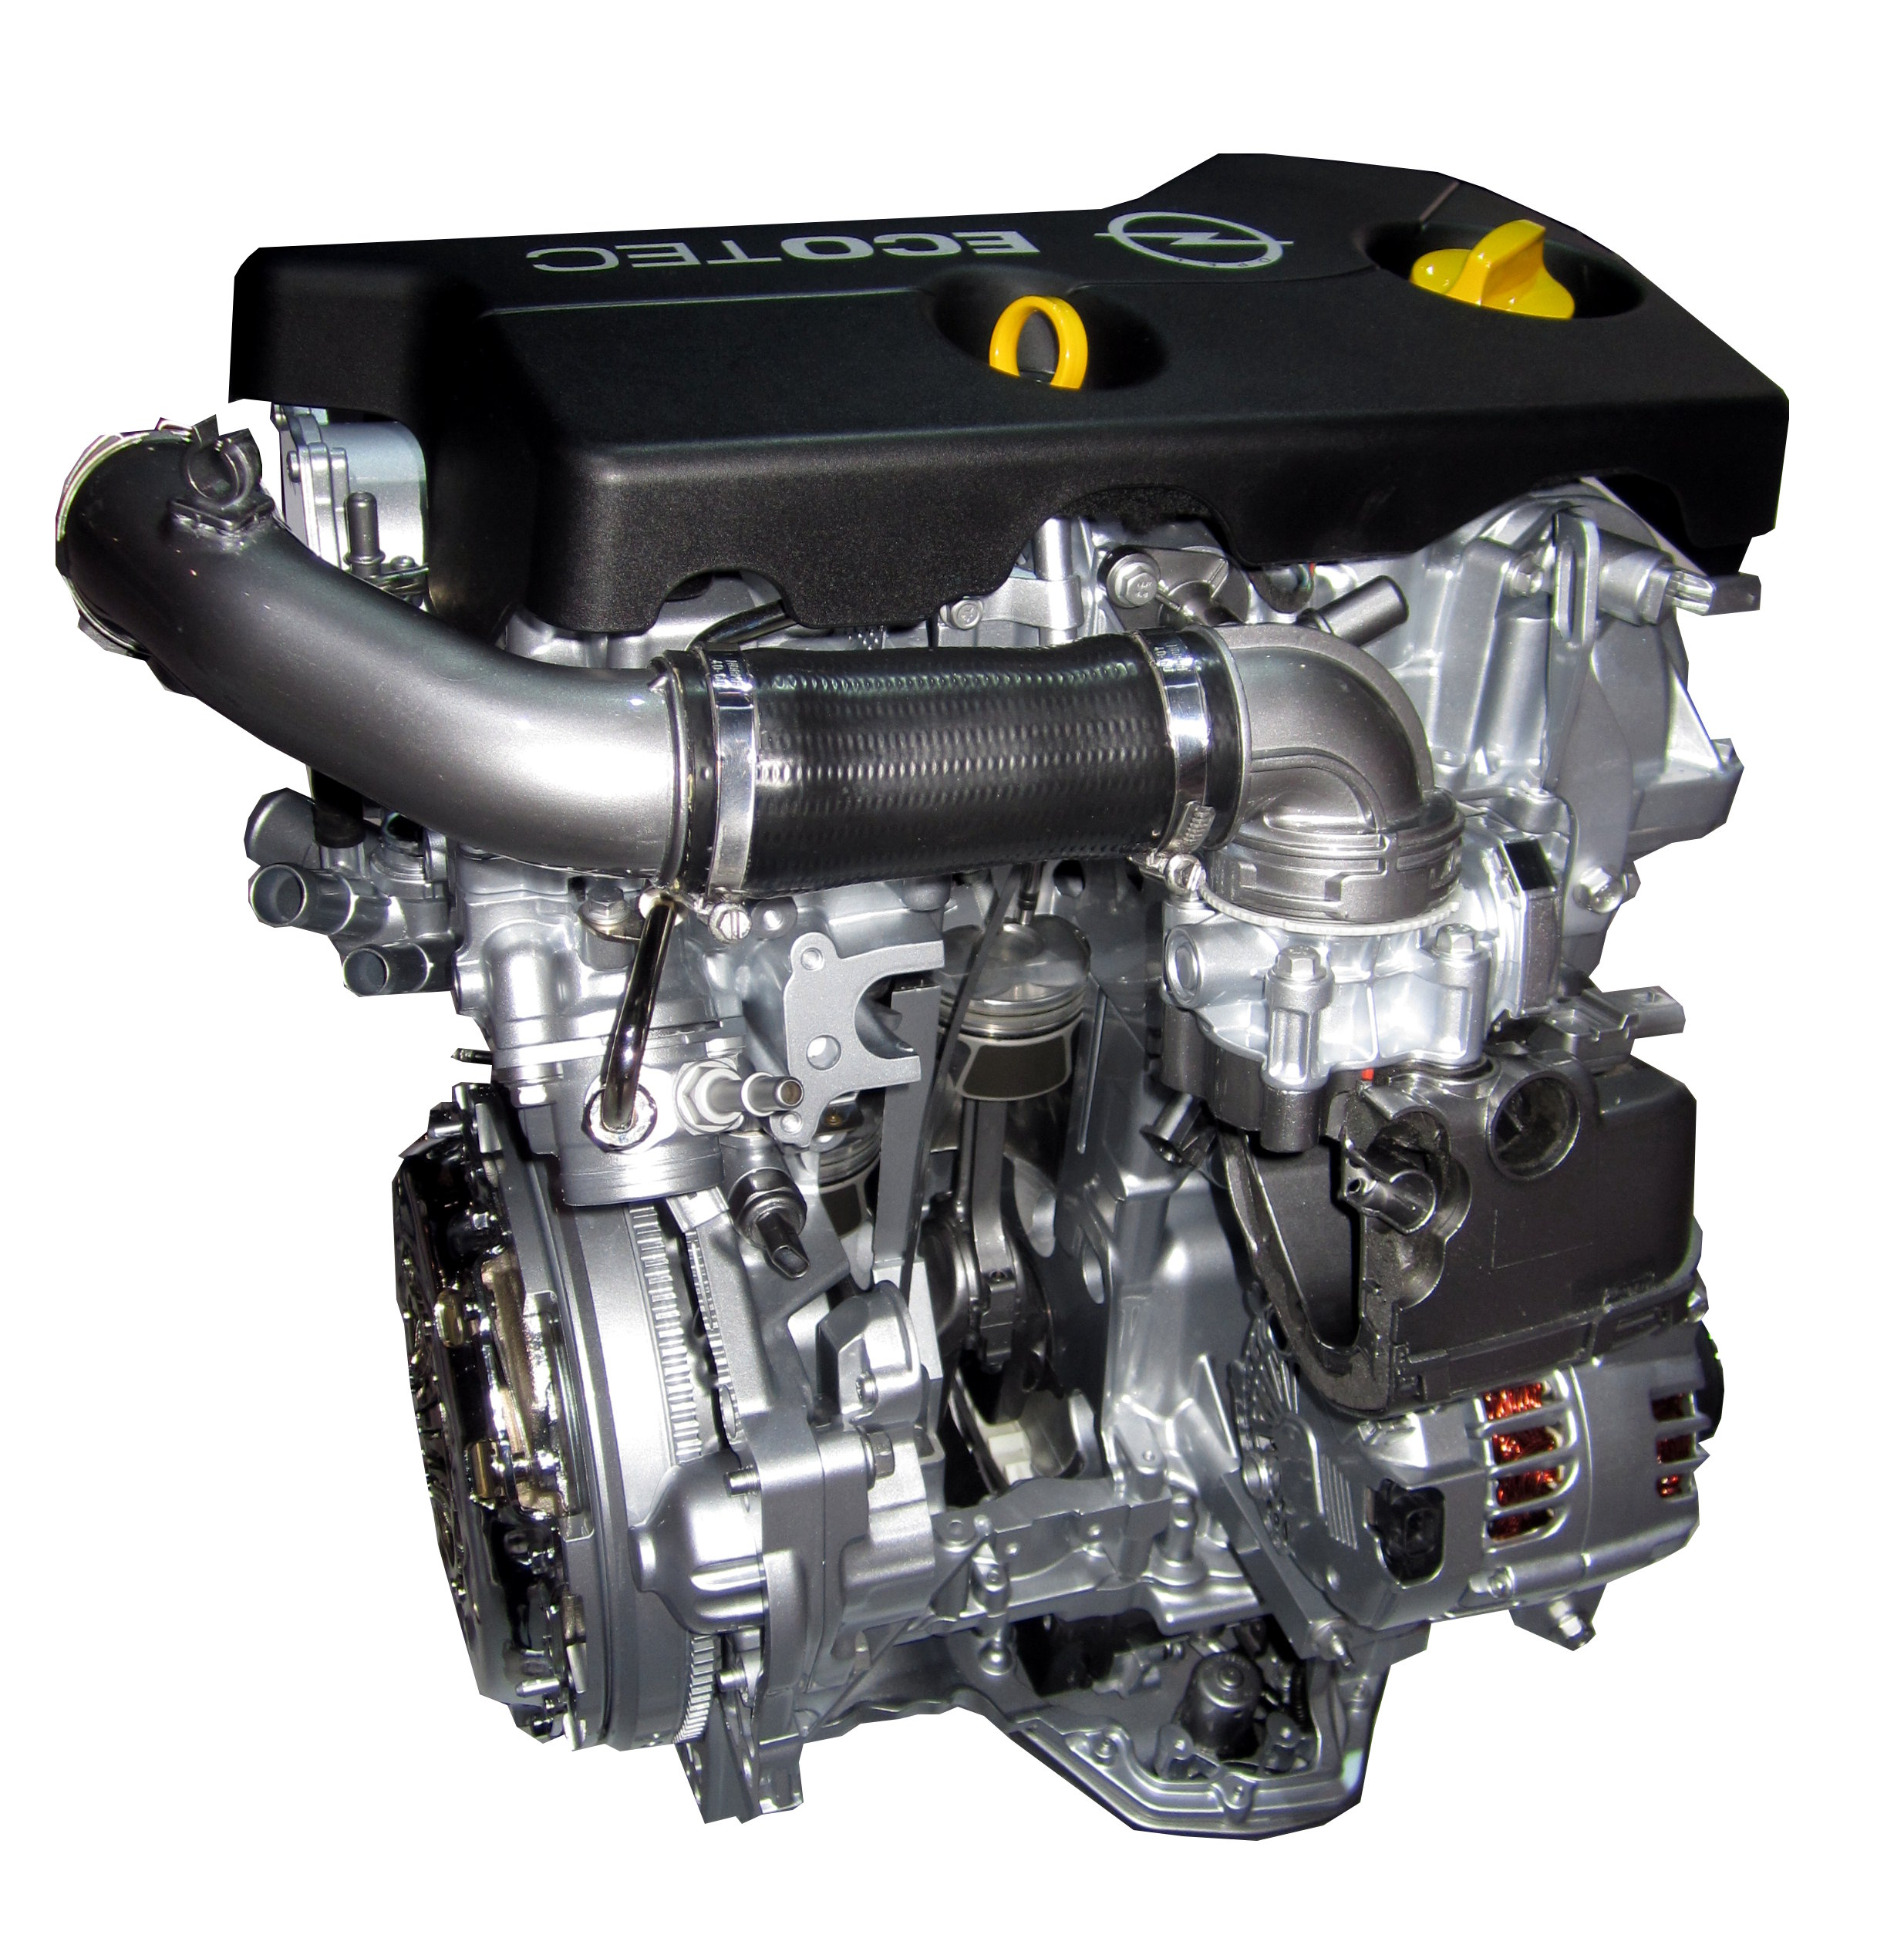 GM small gasoline engine - Wikiwand